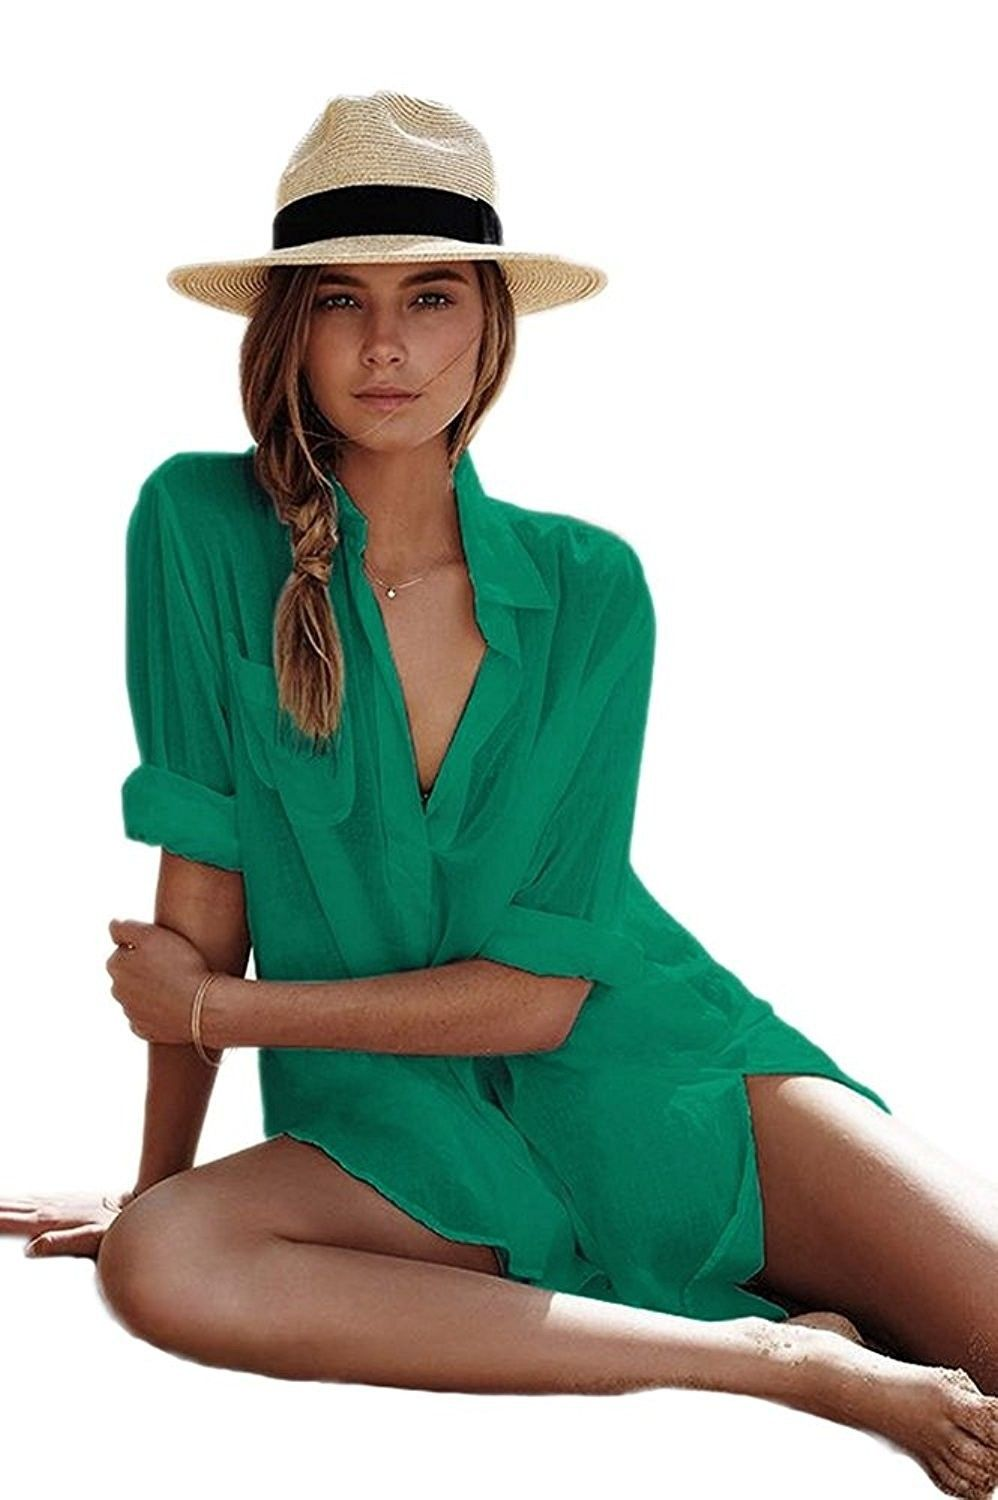 6d2366ad0f1a7 Women's Clothing, Swimsuits & Cover Ups, Cover-Ups, Women's Sexy Cotton V- Neck Summer Beachwear Solid Swimsuit Cover Up Dress - Green - CC18CNM47T8  ...